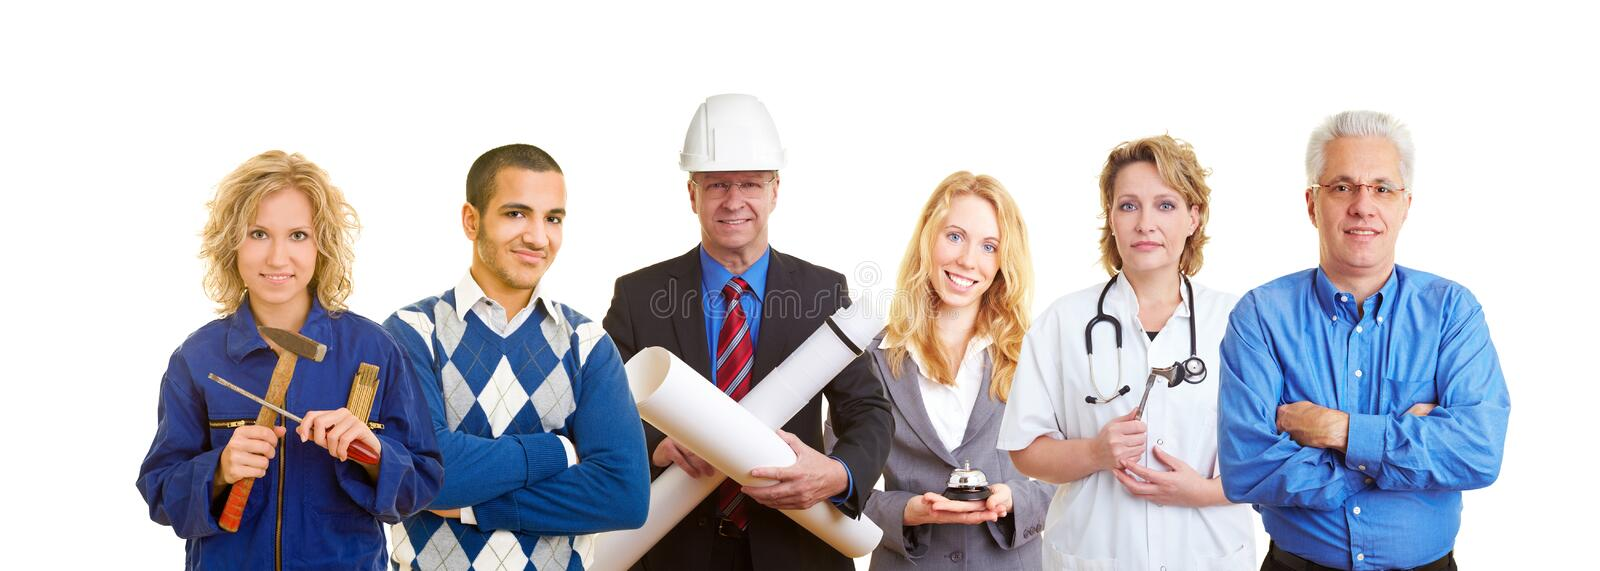 People with different occupations. Group of happy business people with different occupations royalty free stock photography